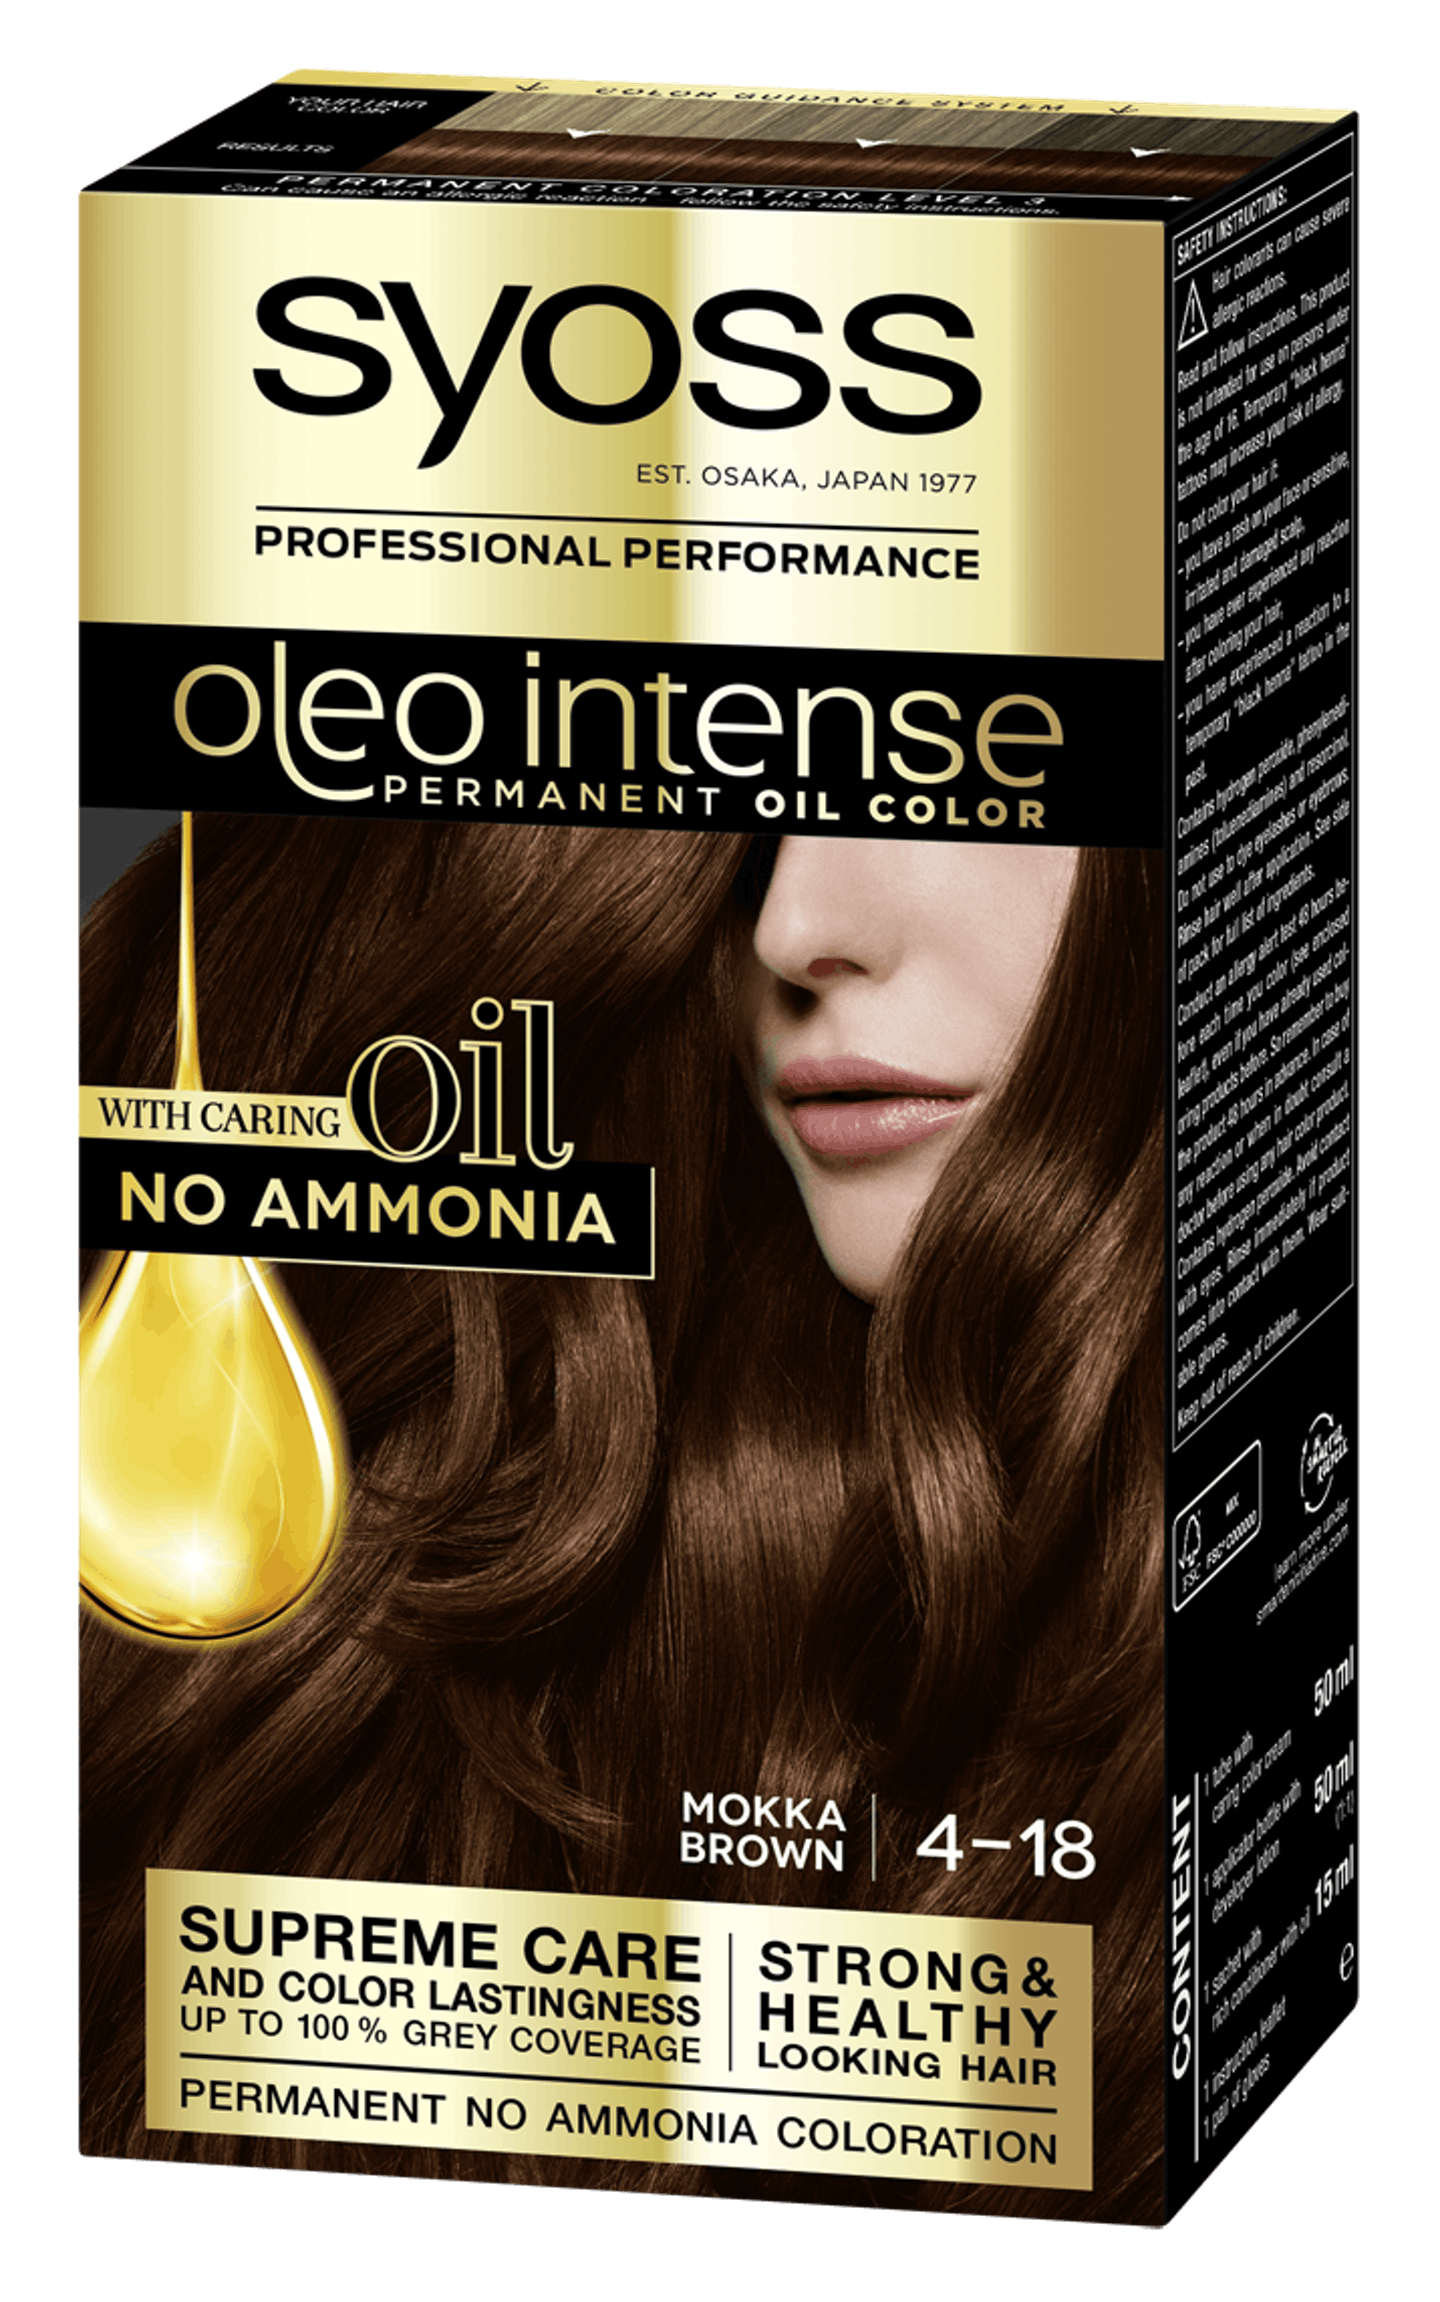 Syoss Oleo Intense Permanent Oil Color 4-18 Mokka Brown